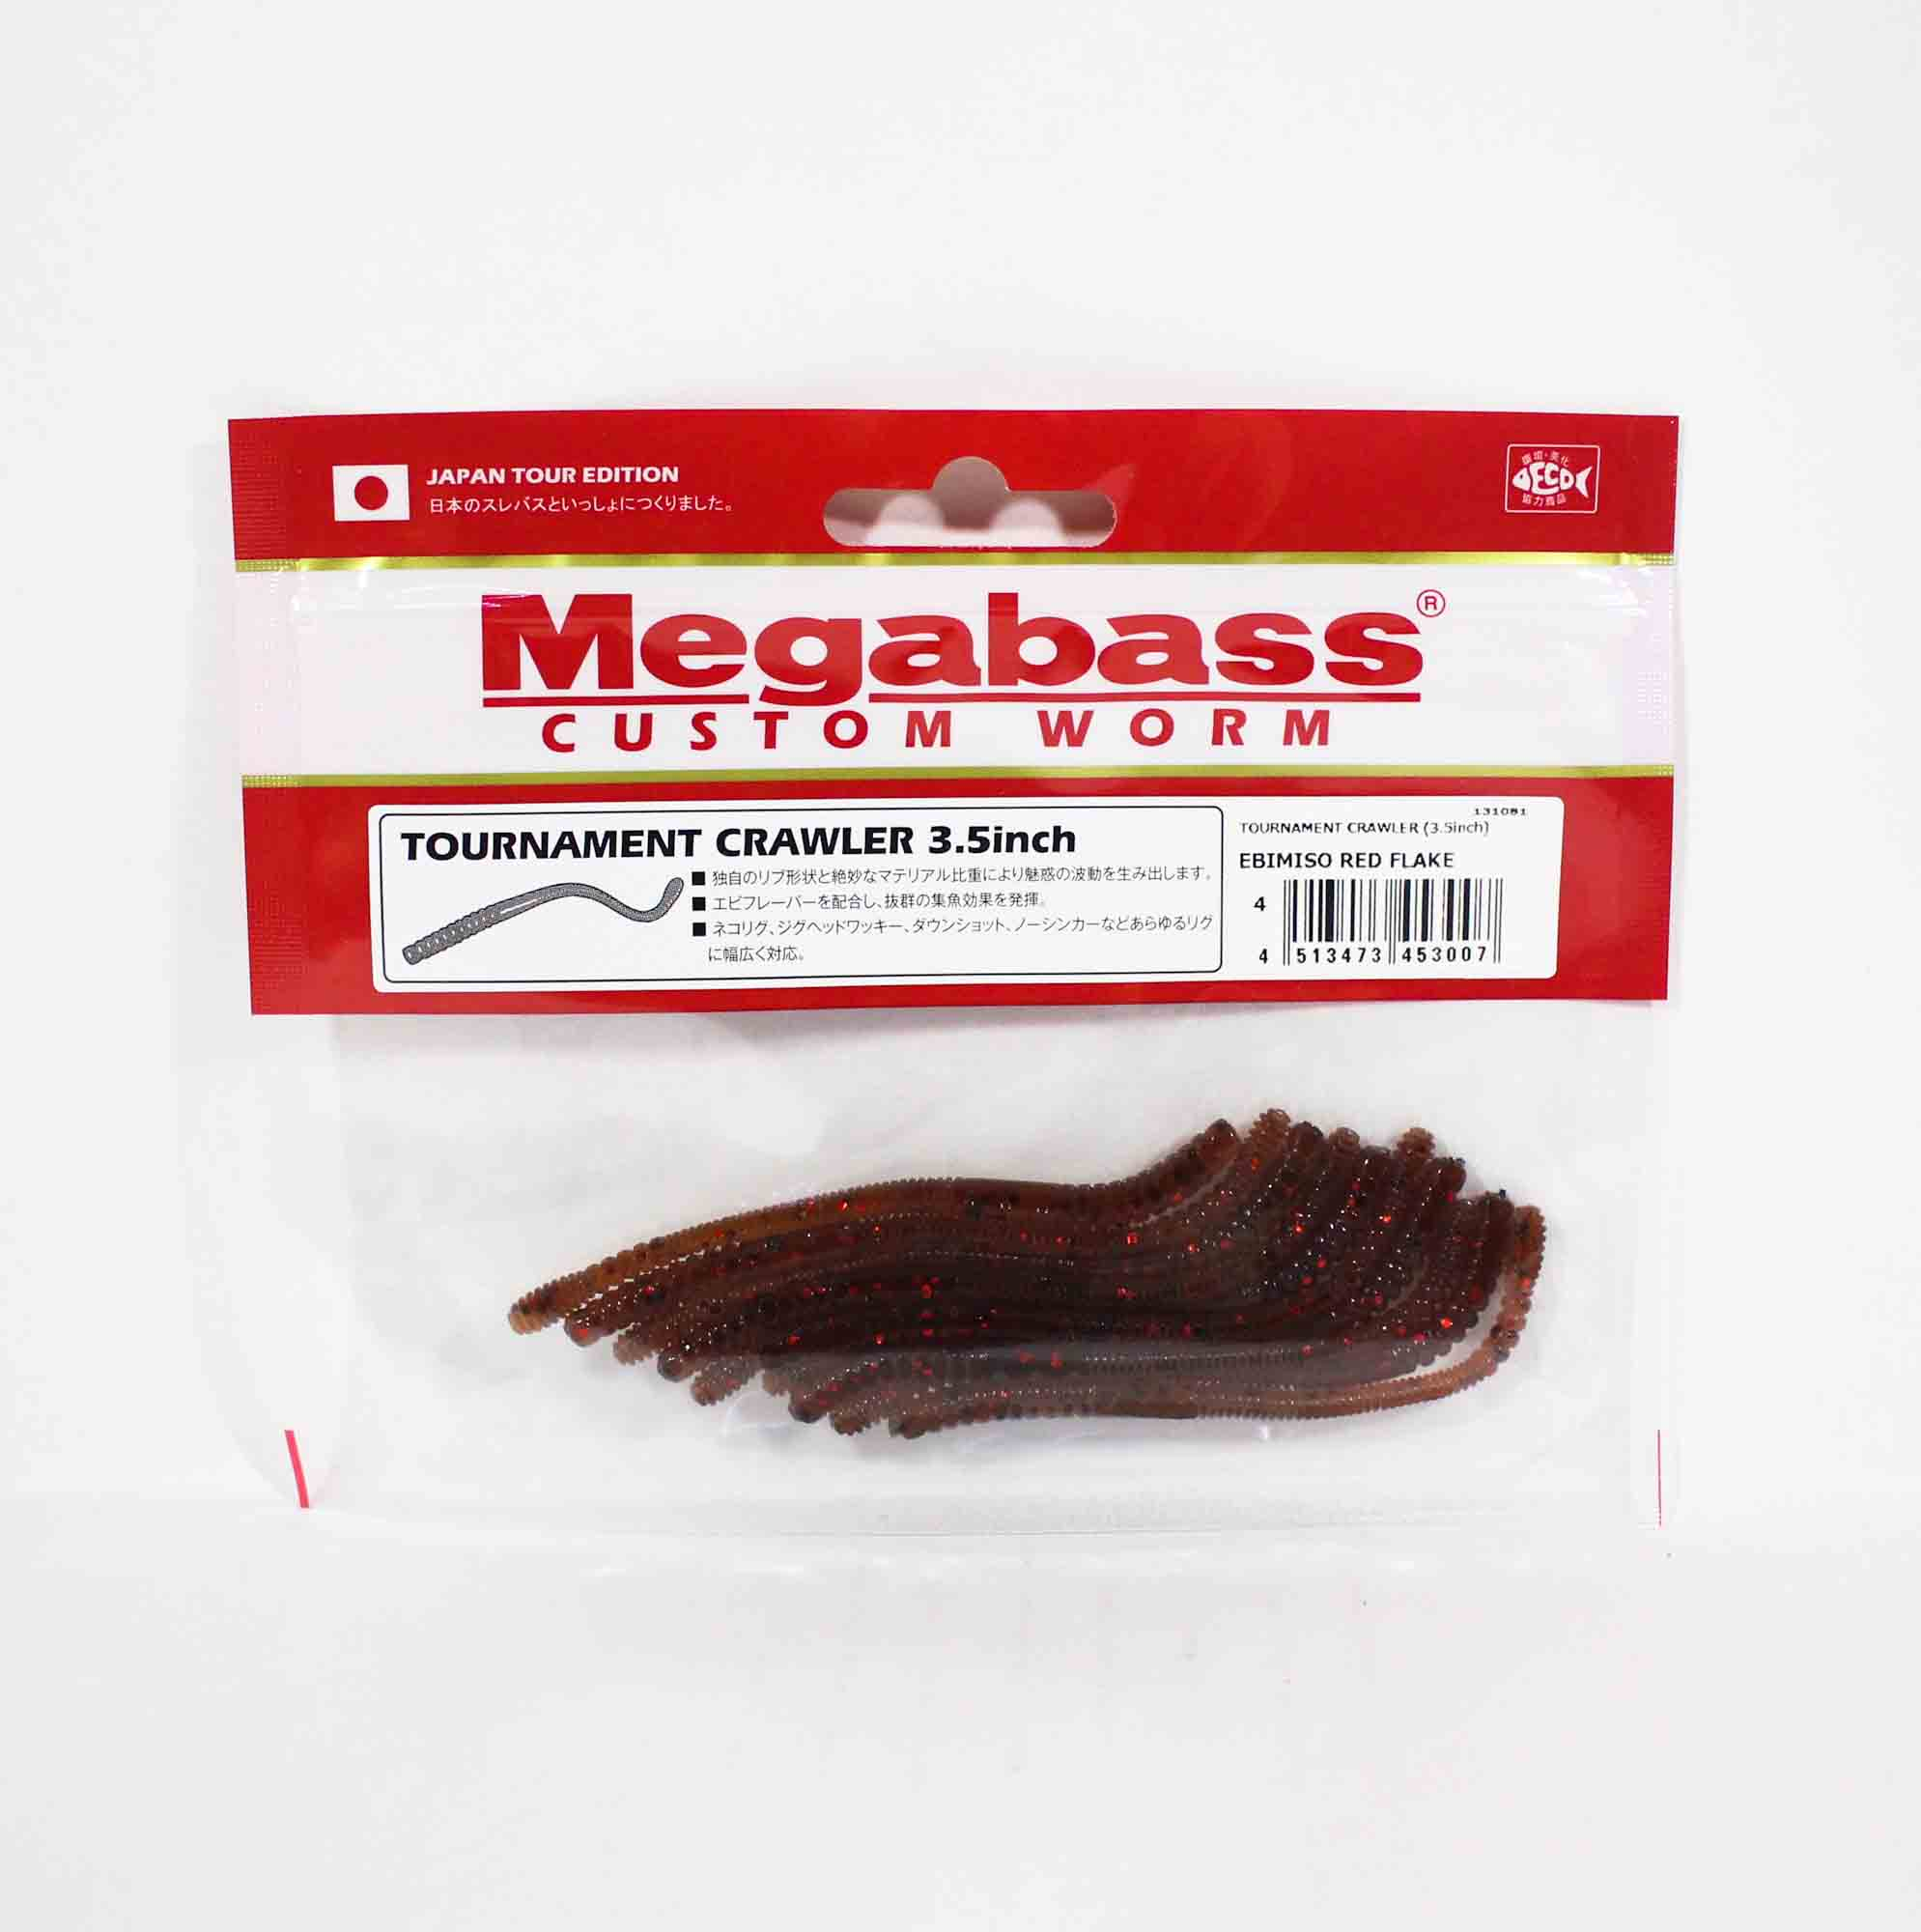 Megabass Tournament Crawler 3.5 Inch Soft Lure Ebimiso Red F (3007)